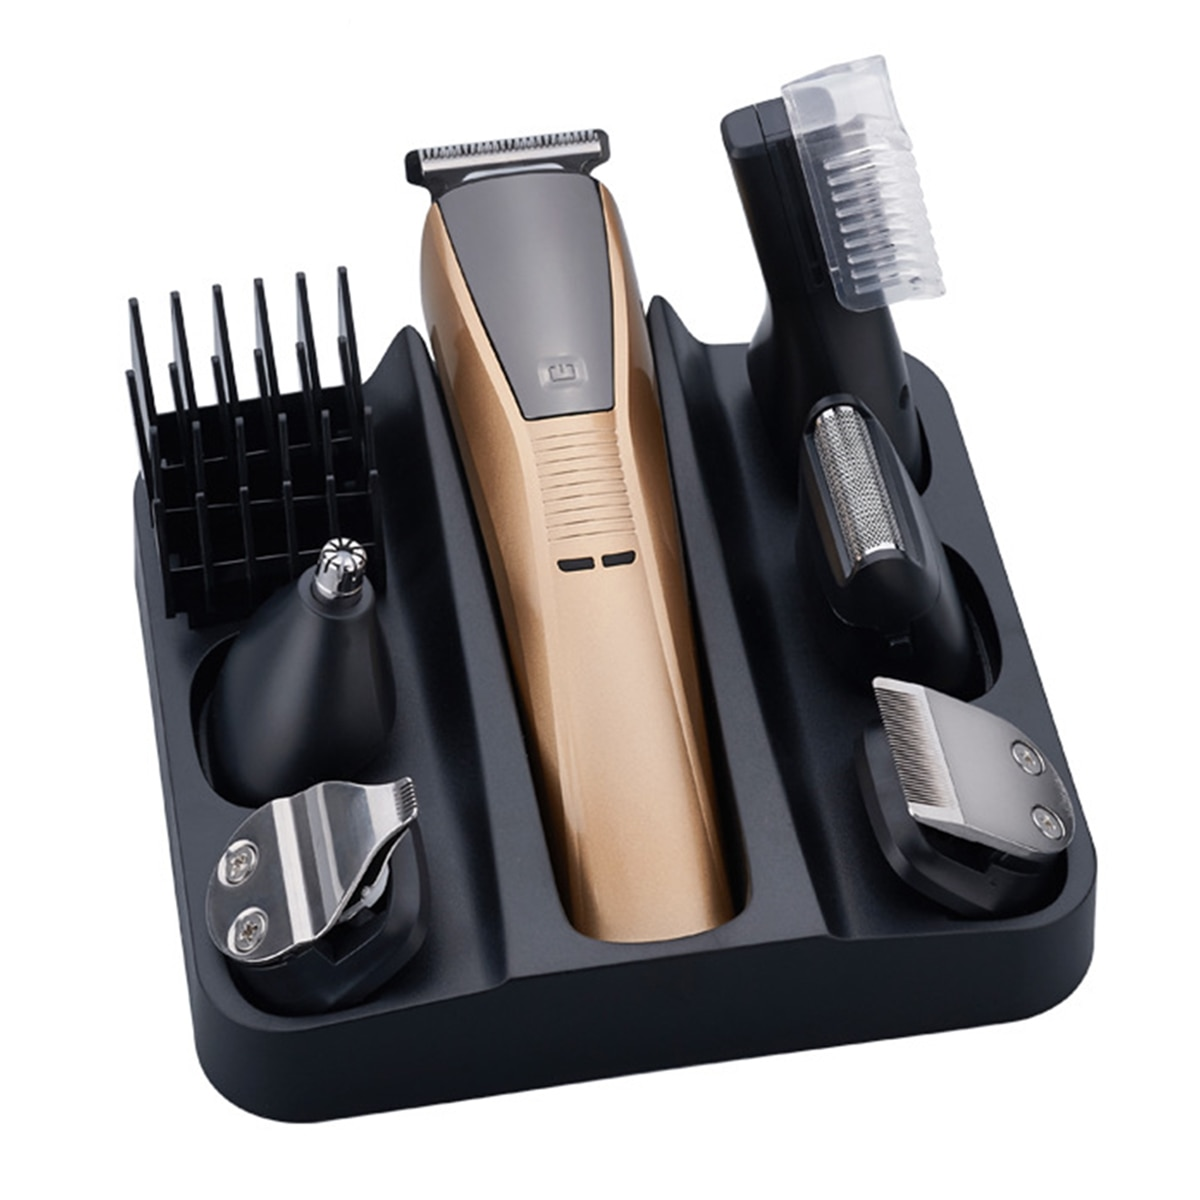 6in1 electric hair trimmer beard hair clipper for men eyebrow trimer nose mustache shaver body groomer face haircut machine kit